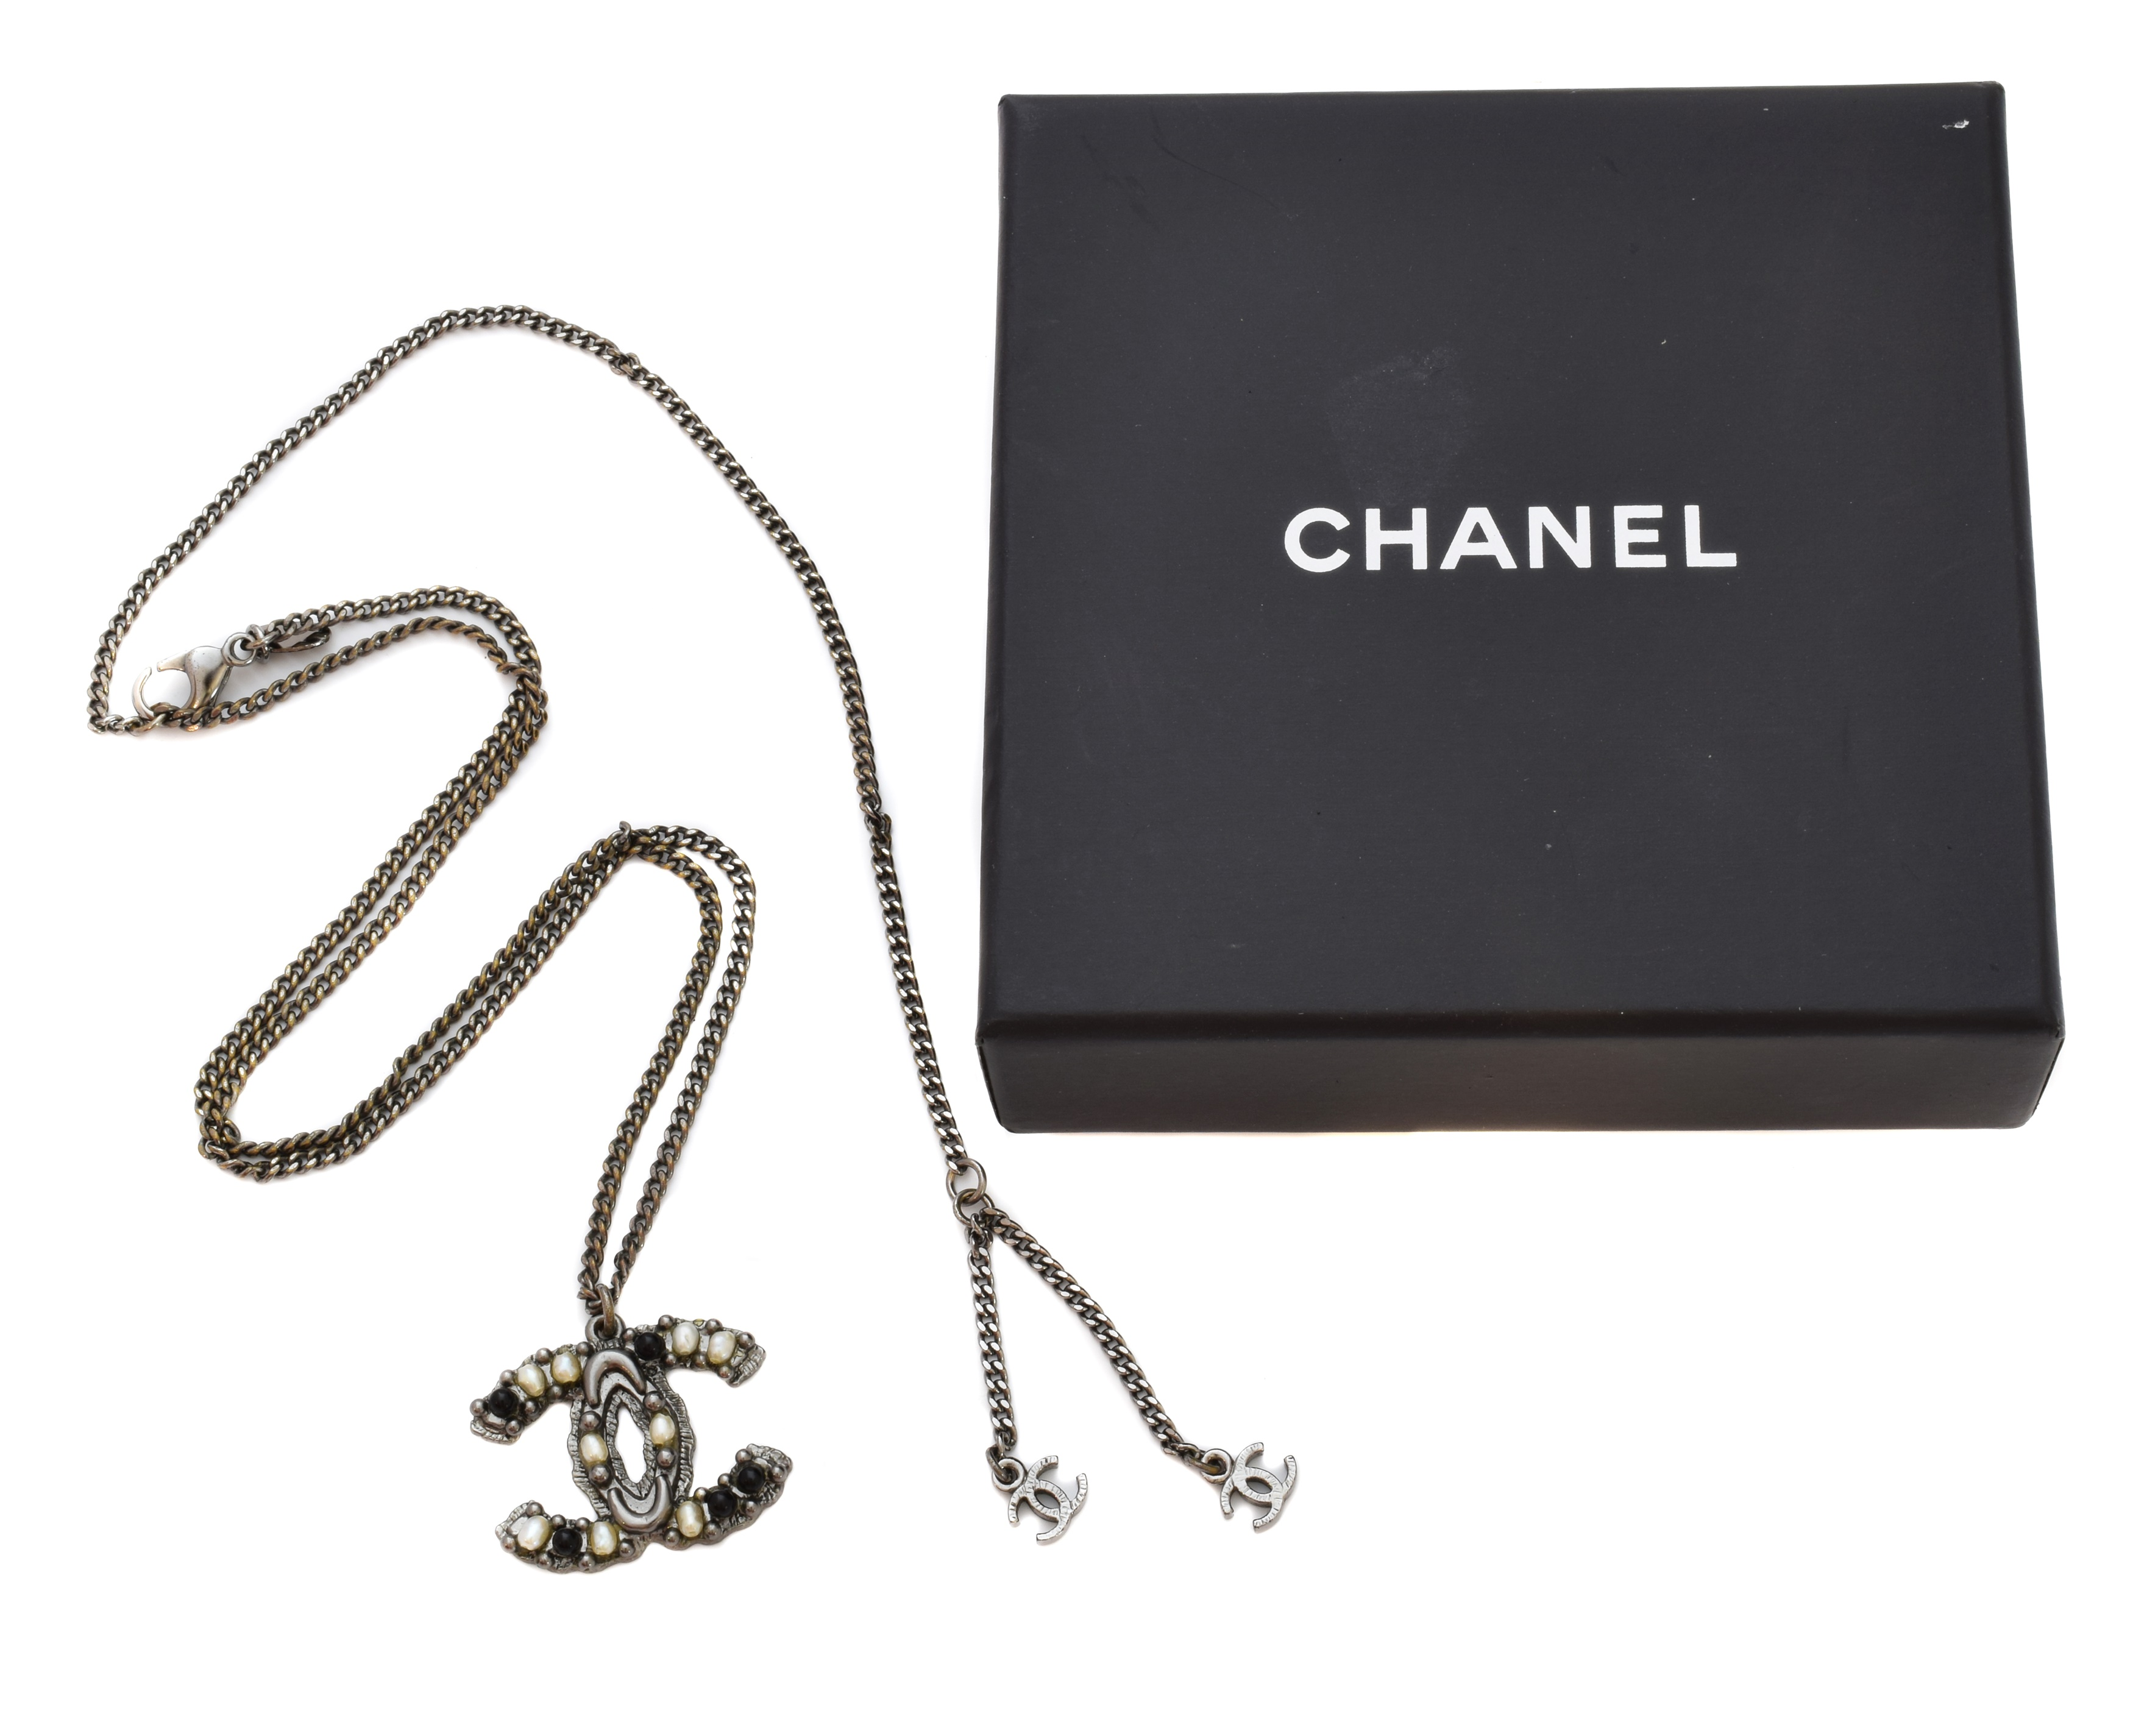 A Chanel necklace, the imitation pearl and black paste CC suspended from a flat curb link chain, signed and numbered Chanel A11, length of pendant 2.3cm, length of chain 42cm. With maker's pouch and box.